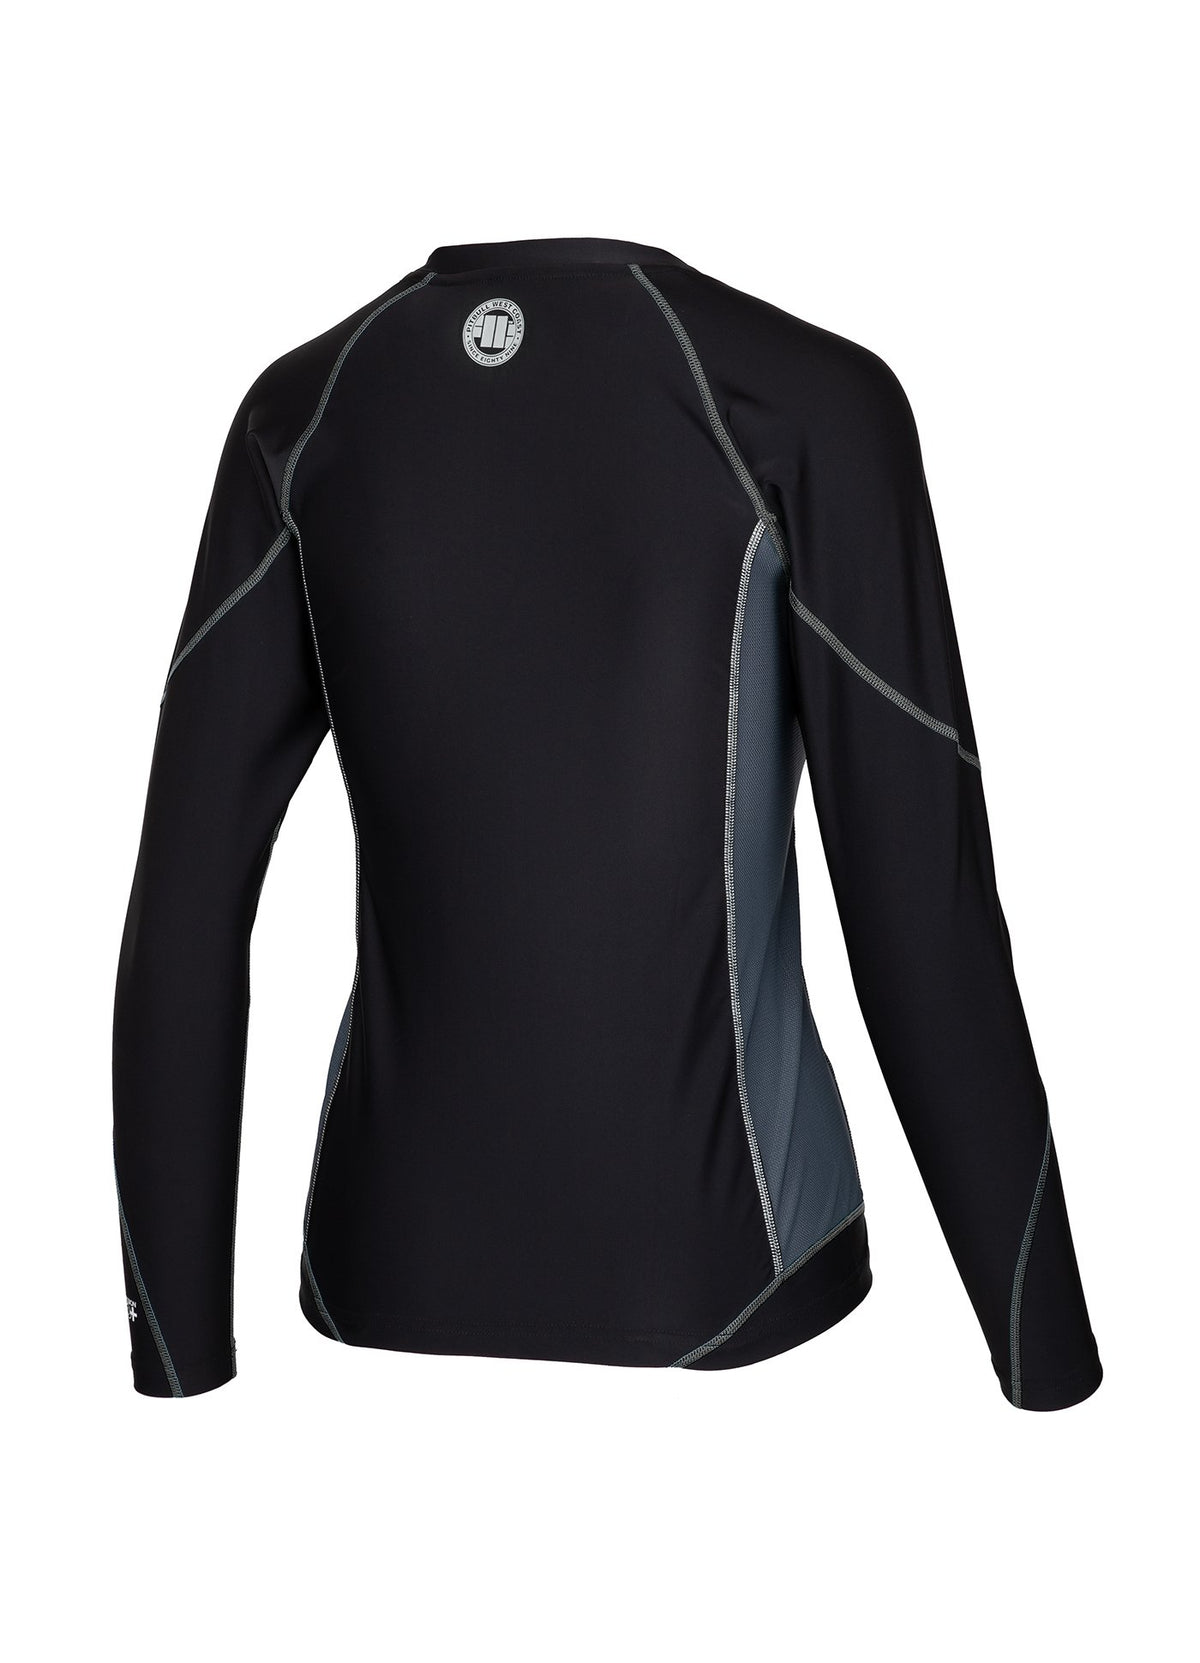 Women Longsleeve Rashguard Compression PRO PLUS Black - Pitbull West Coast U.S.A.